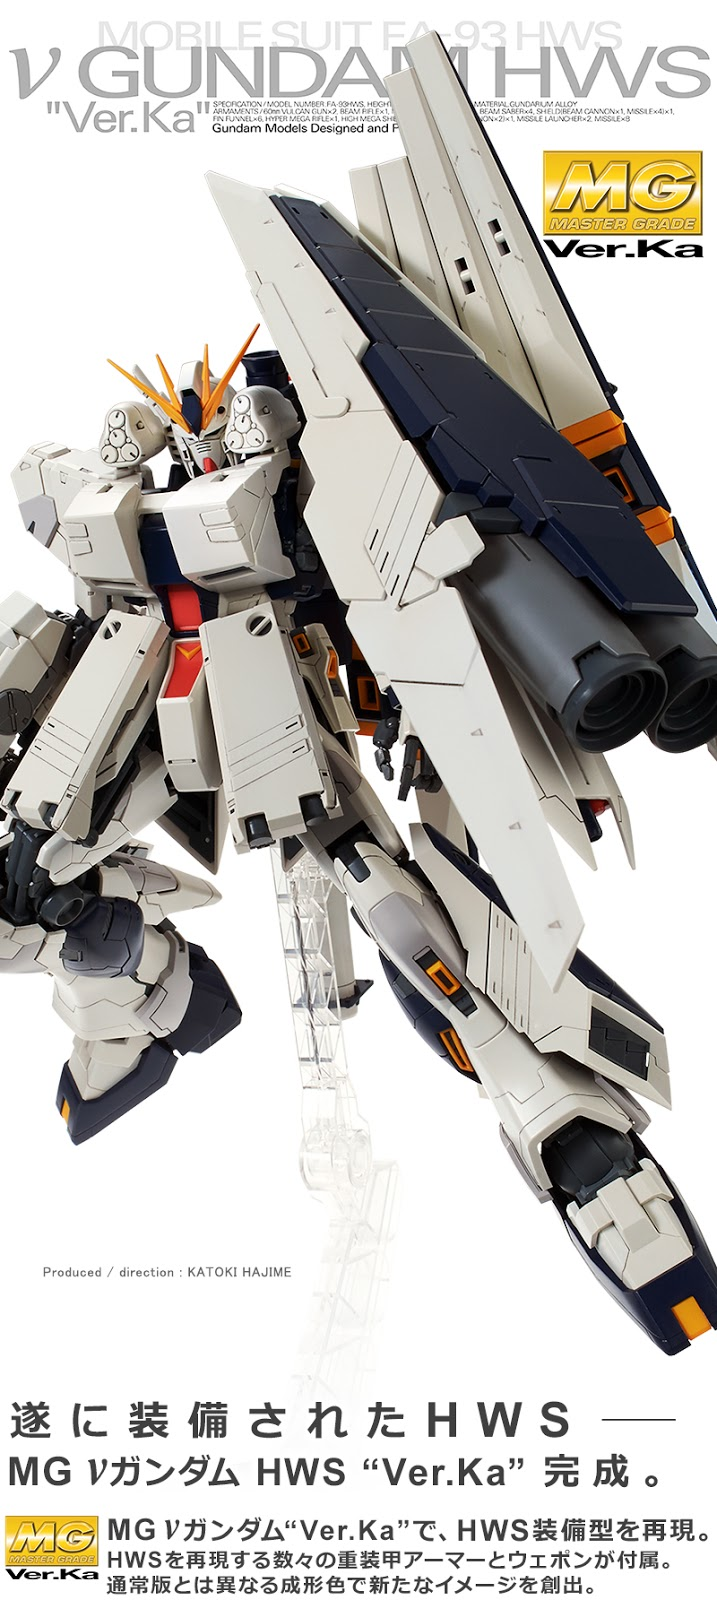 P-Bandai: MG 1/100 FA-93HWS nu Gundam Heavy Weapon System [HWS] Ver. Ka Full Set